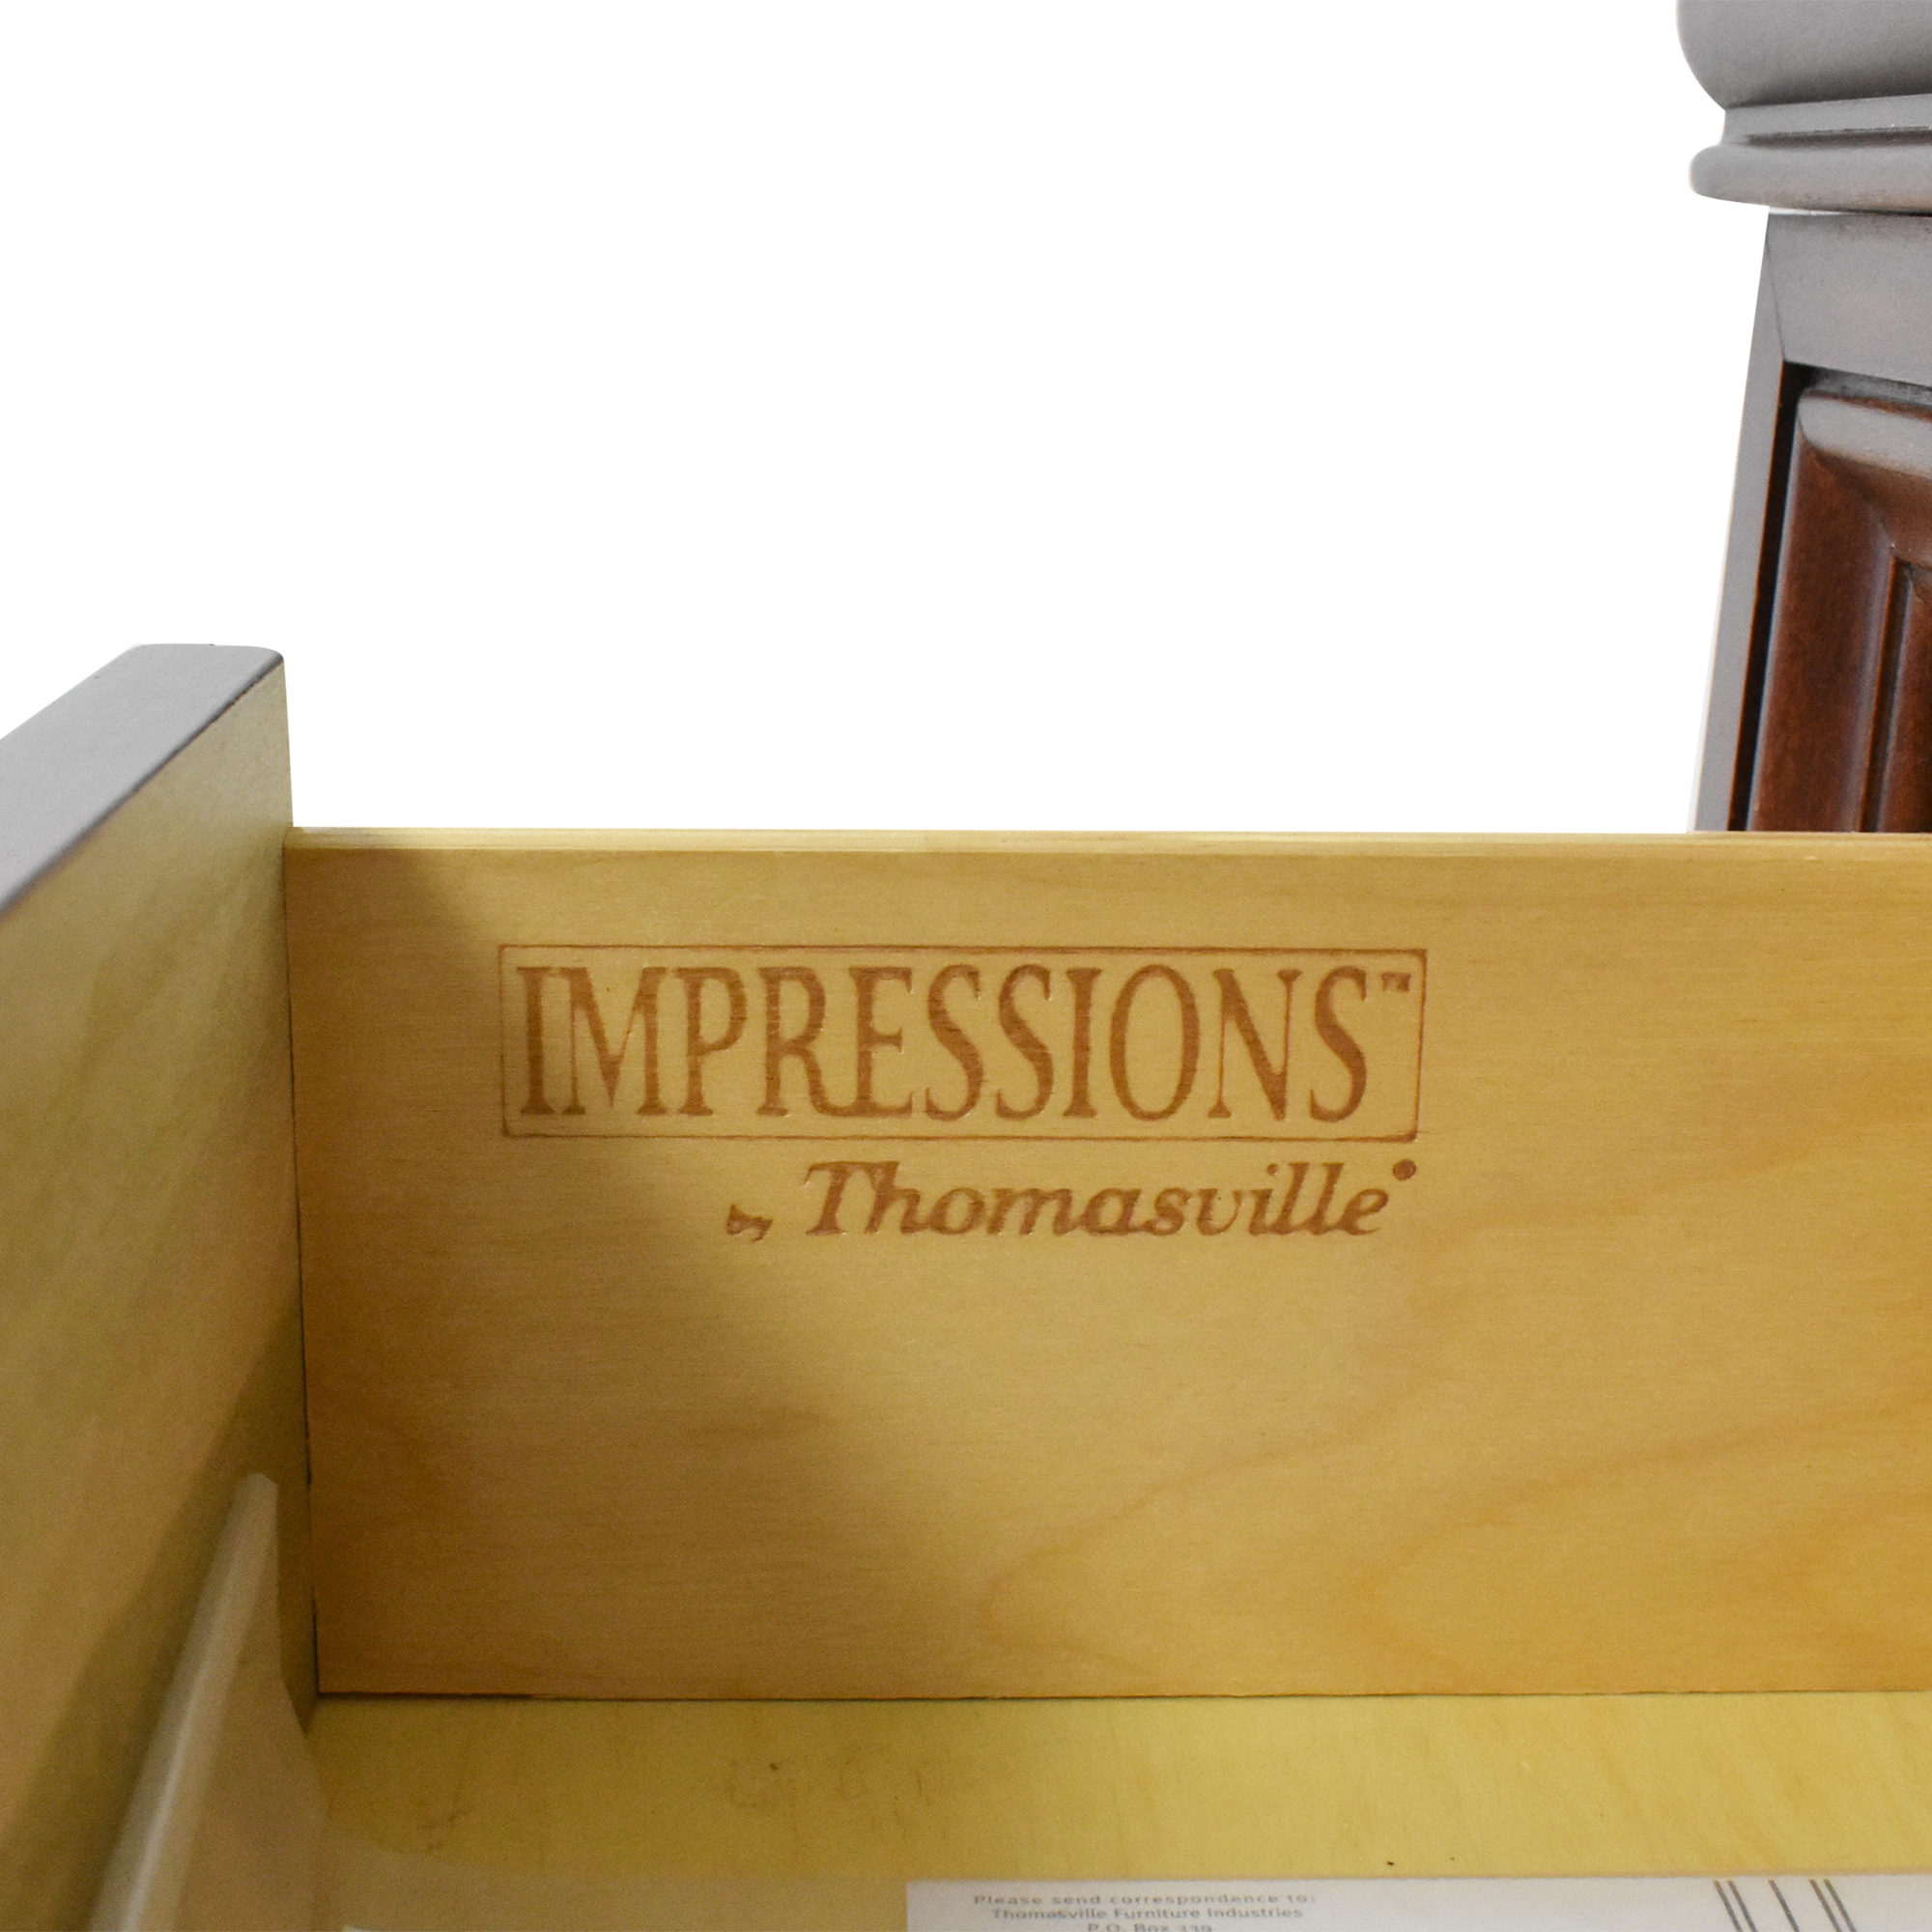 Thomasville Thomasville Impressions Two Drawer Nightstands ma